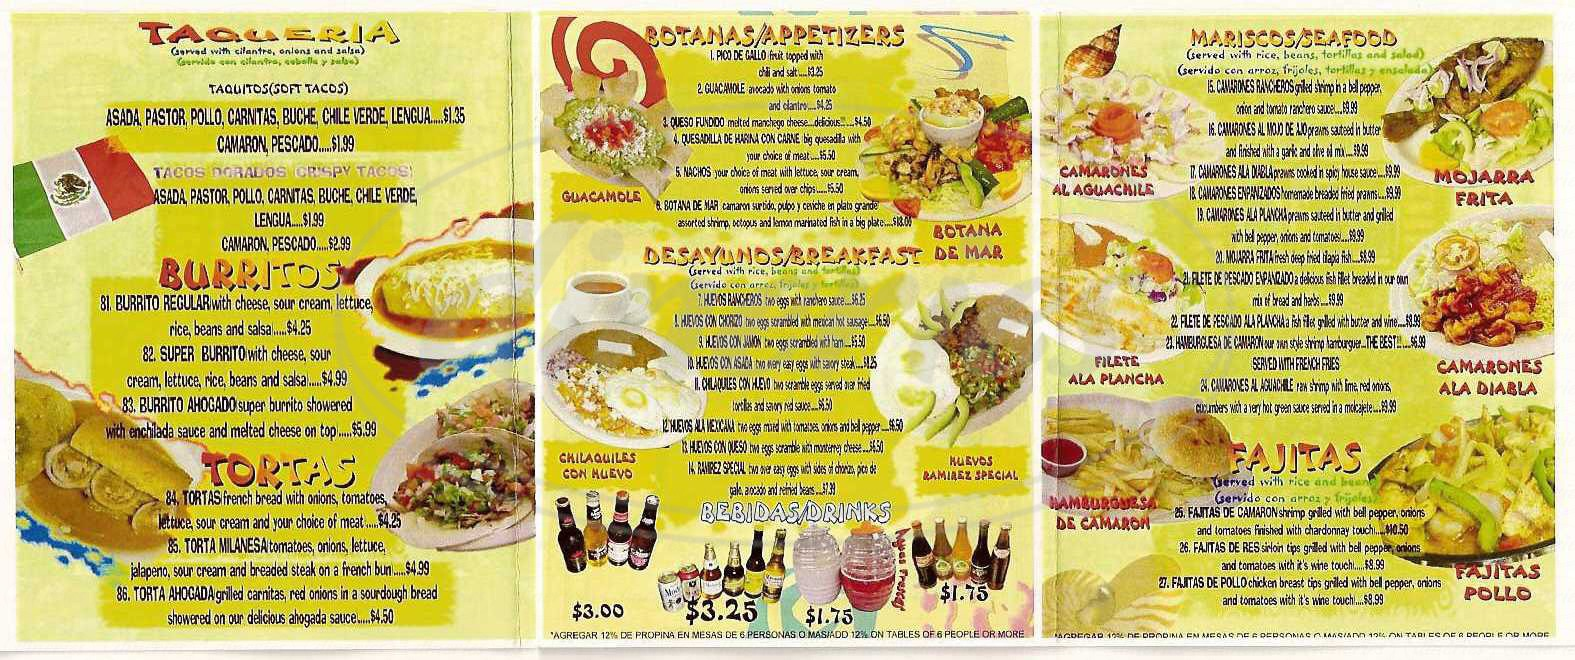 menu for La Casita